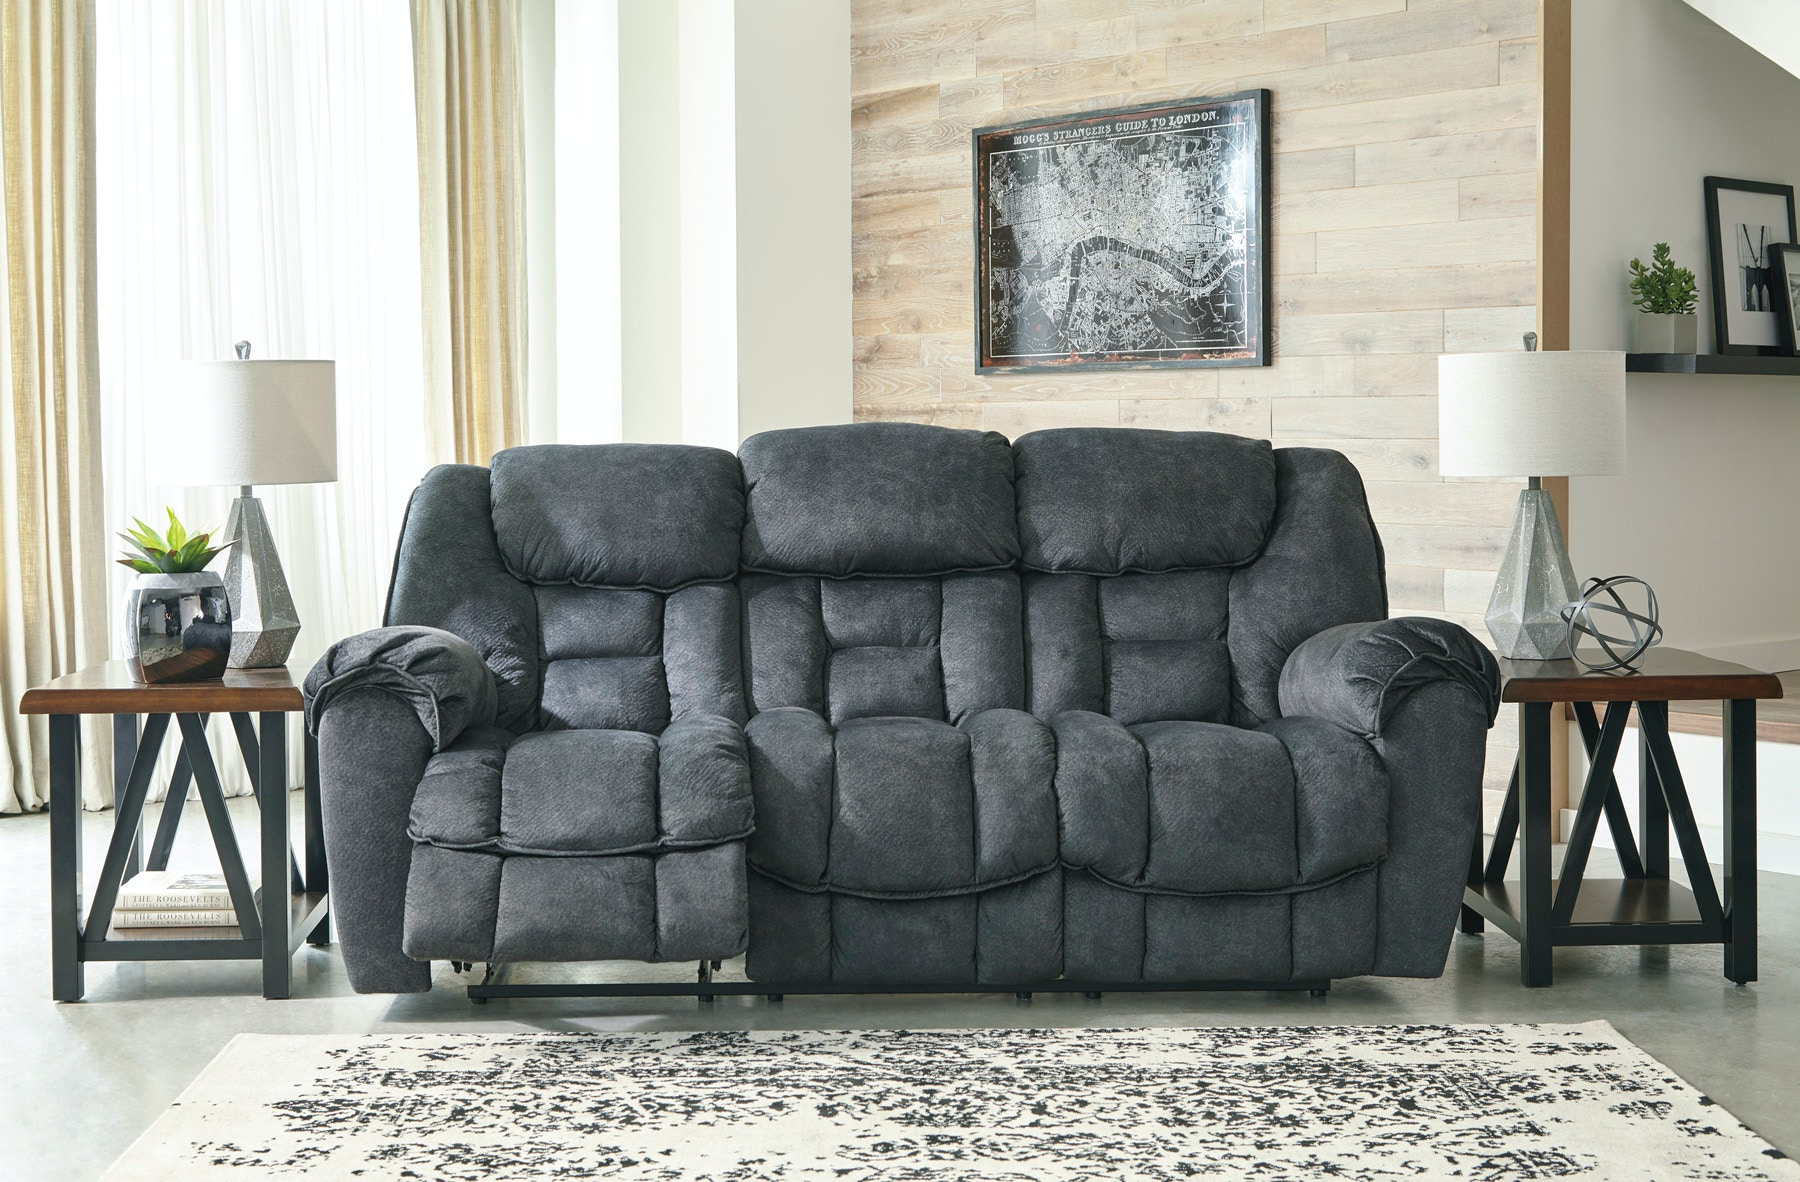 Signature Design by Ashley Living Room Capehorn Reclining Sofa